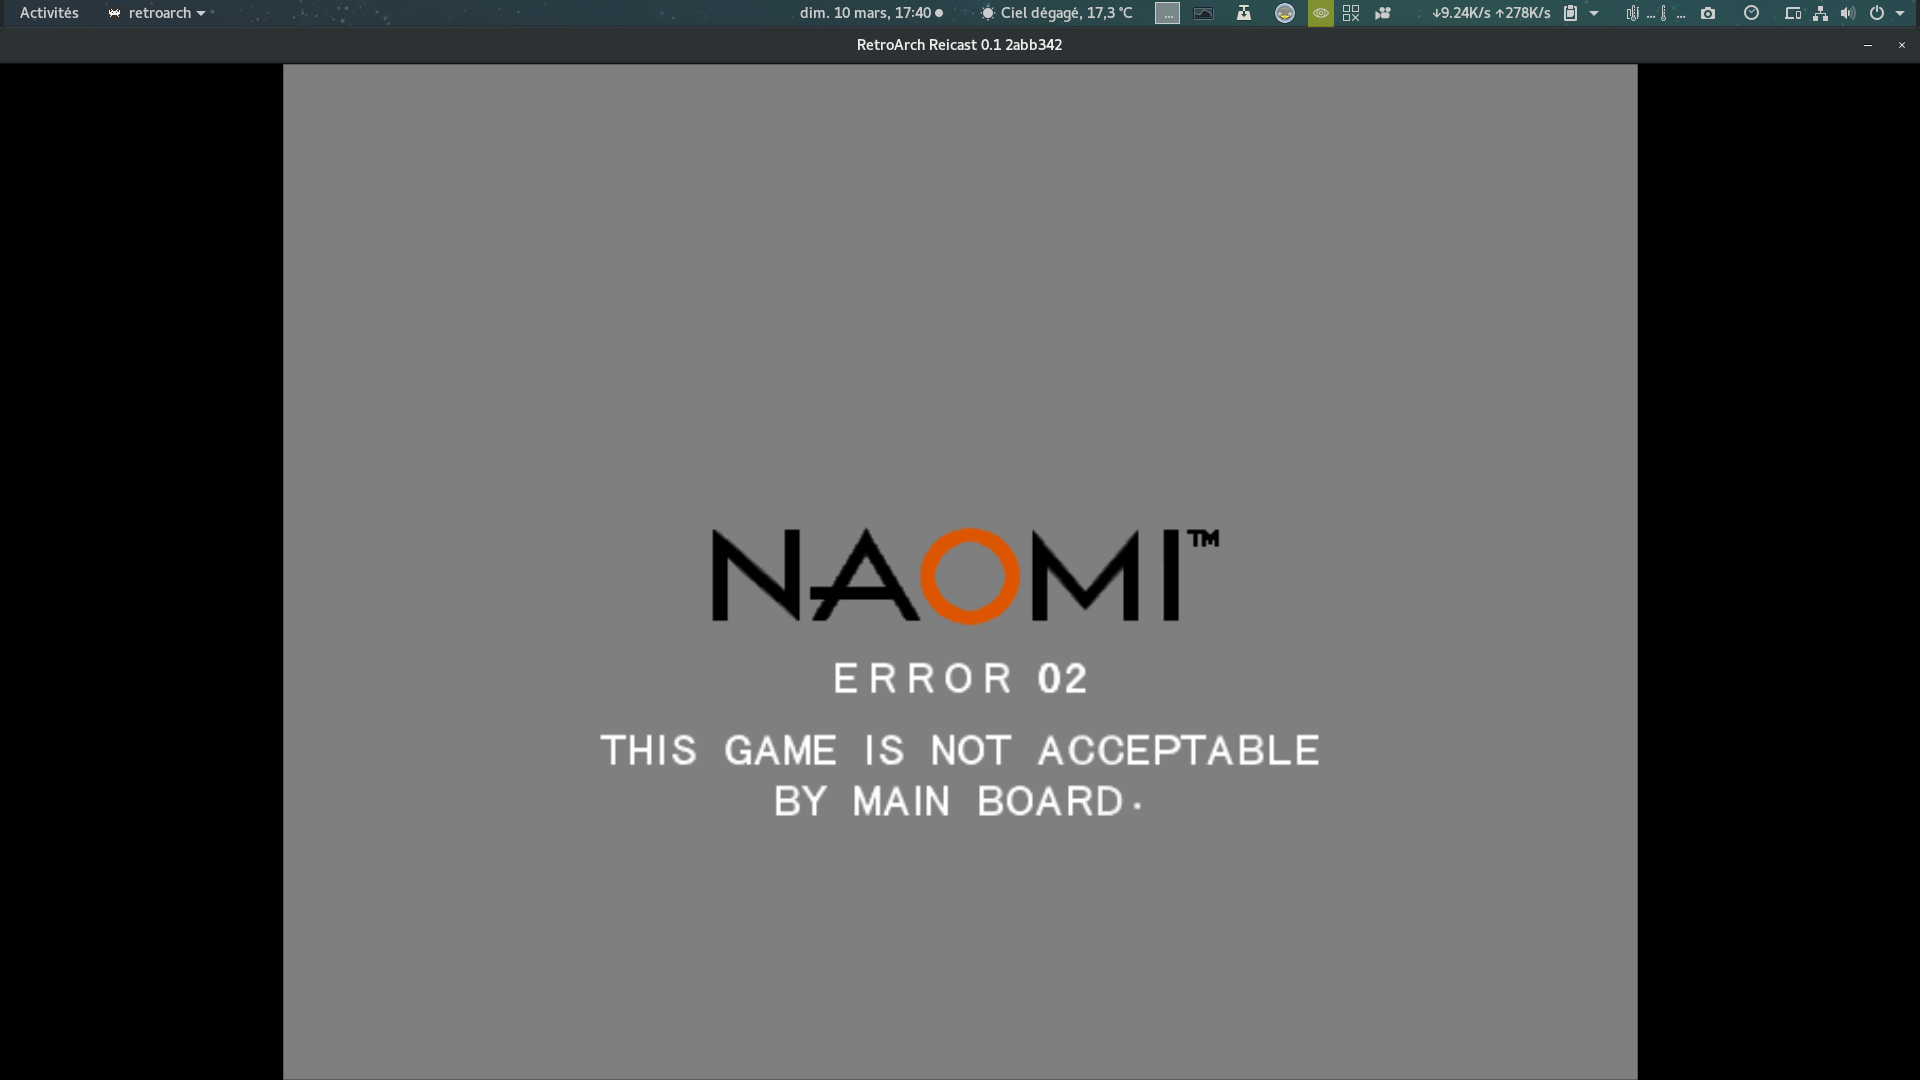 Naomi) Compatibility list [OIT] · Issue #136 · libretro/flycast · GitHub